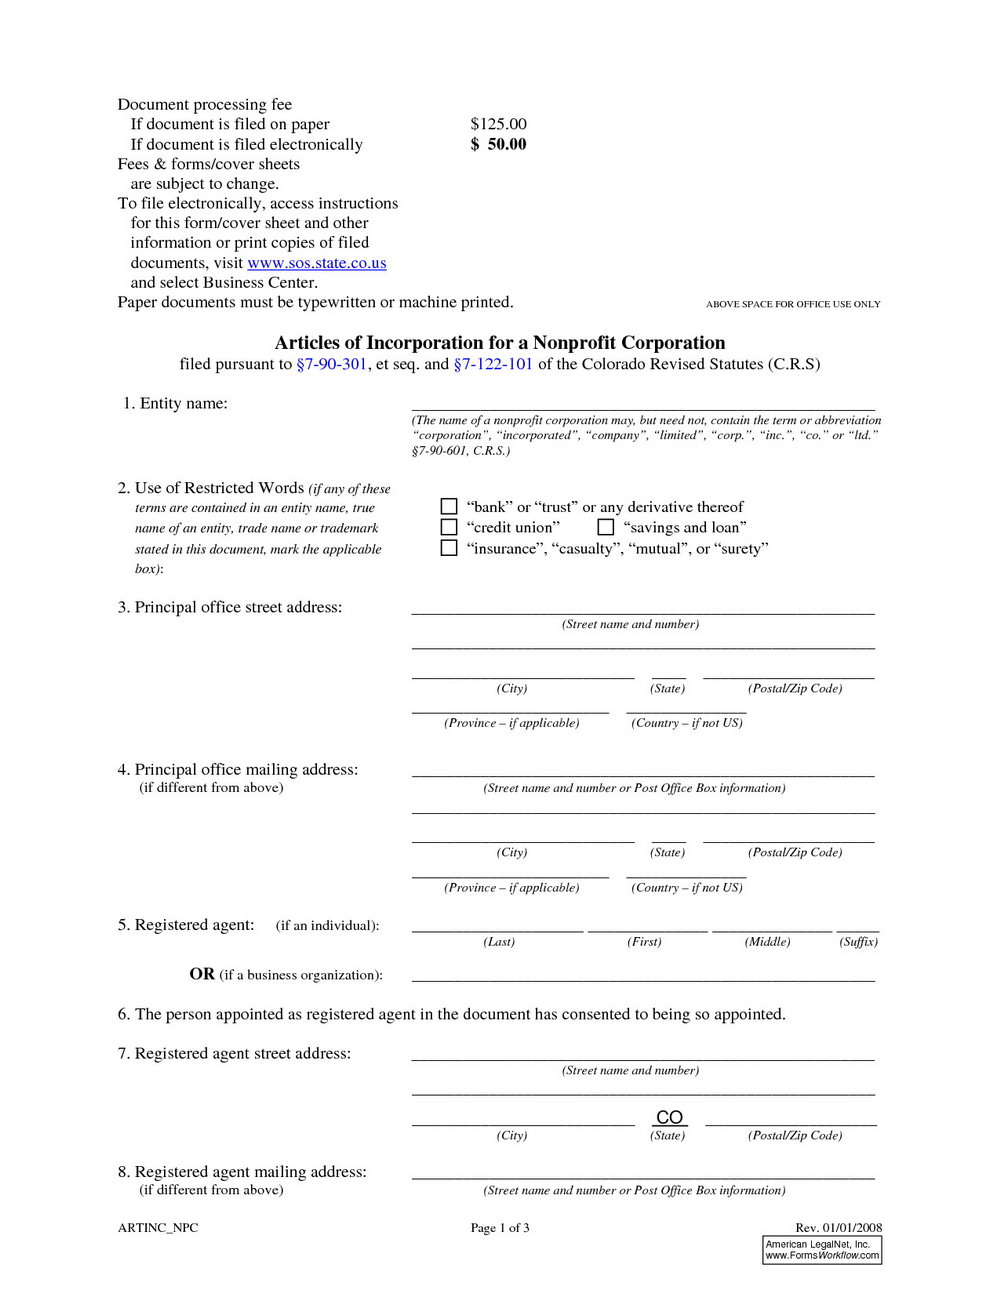 Articles Of Incorporation Washington State Template